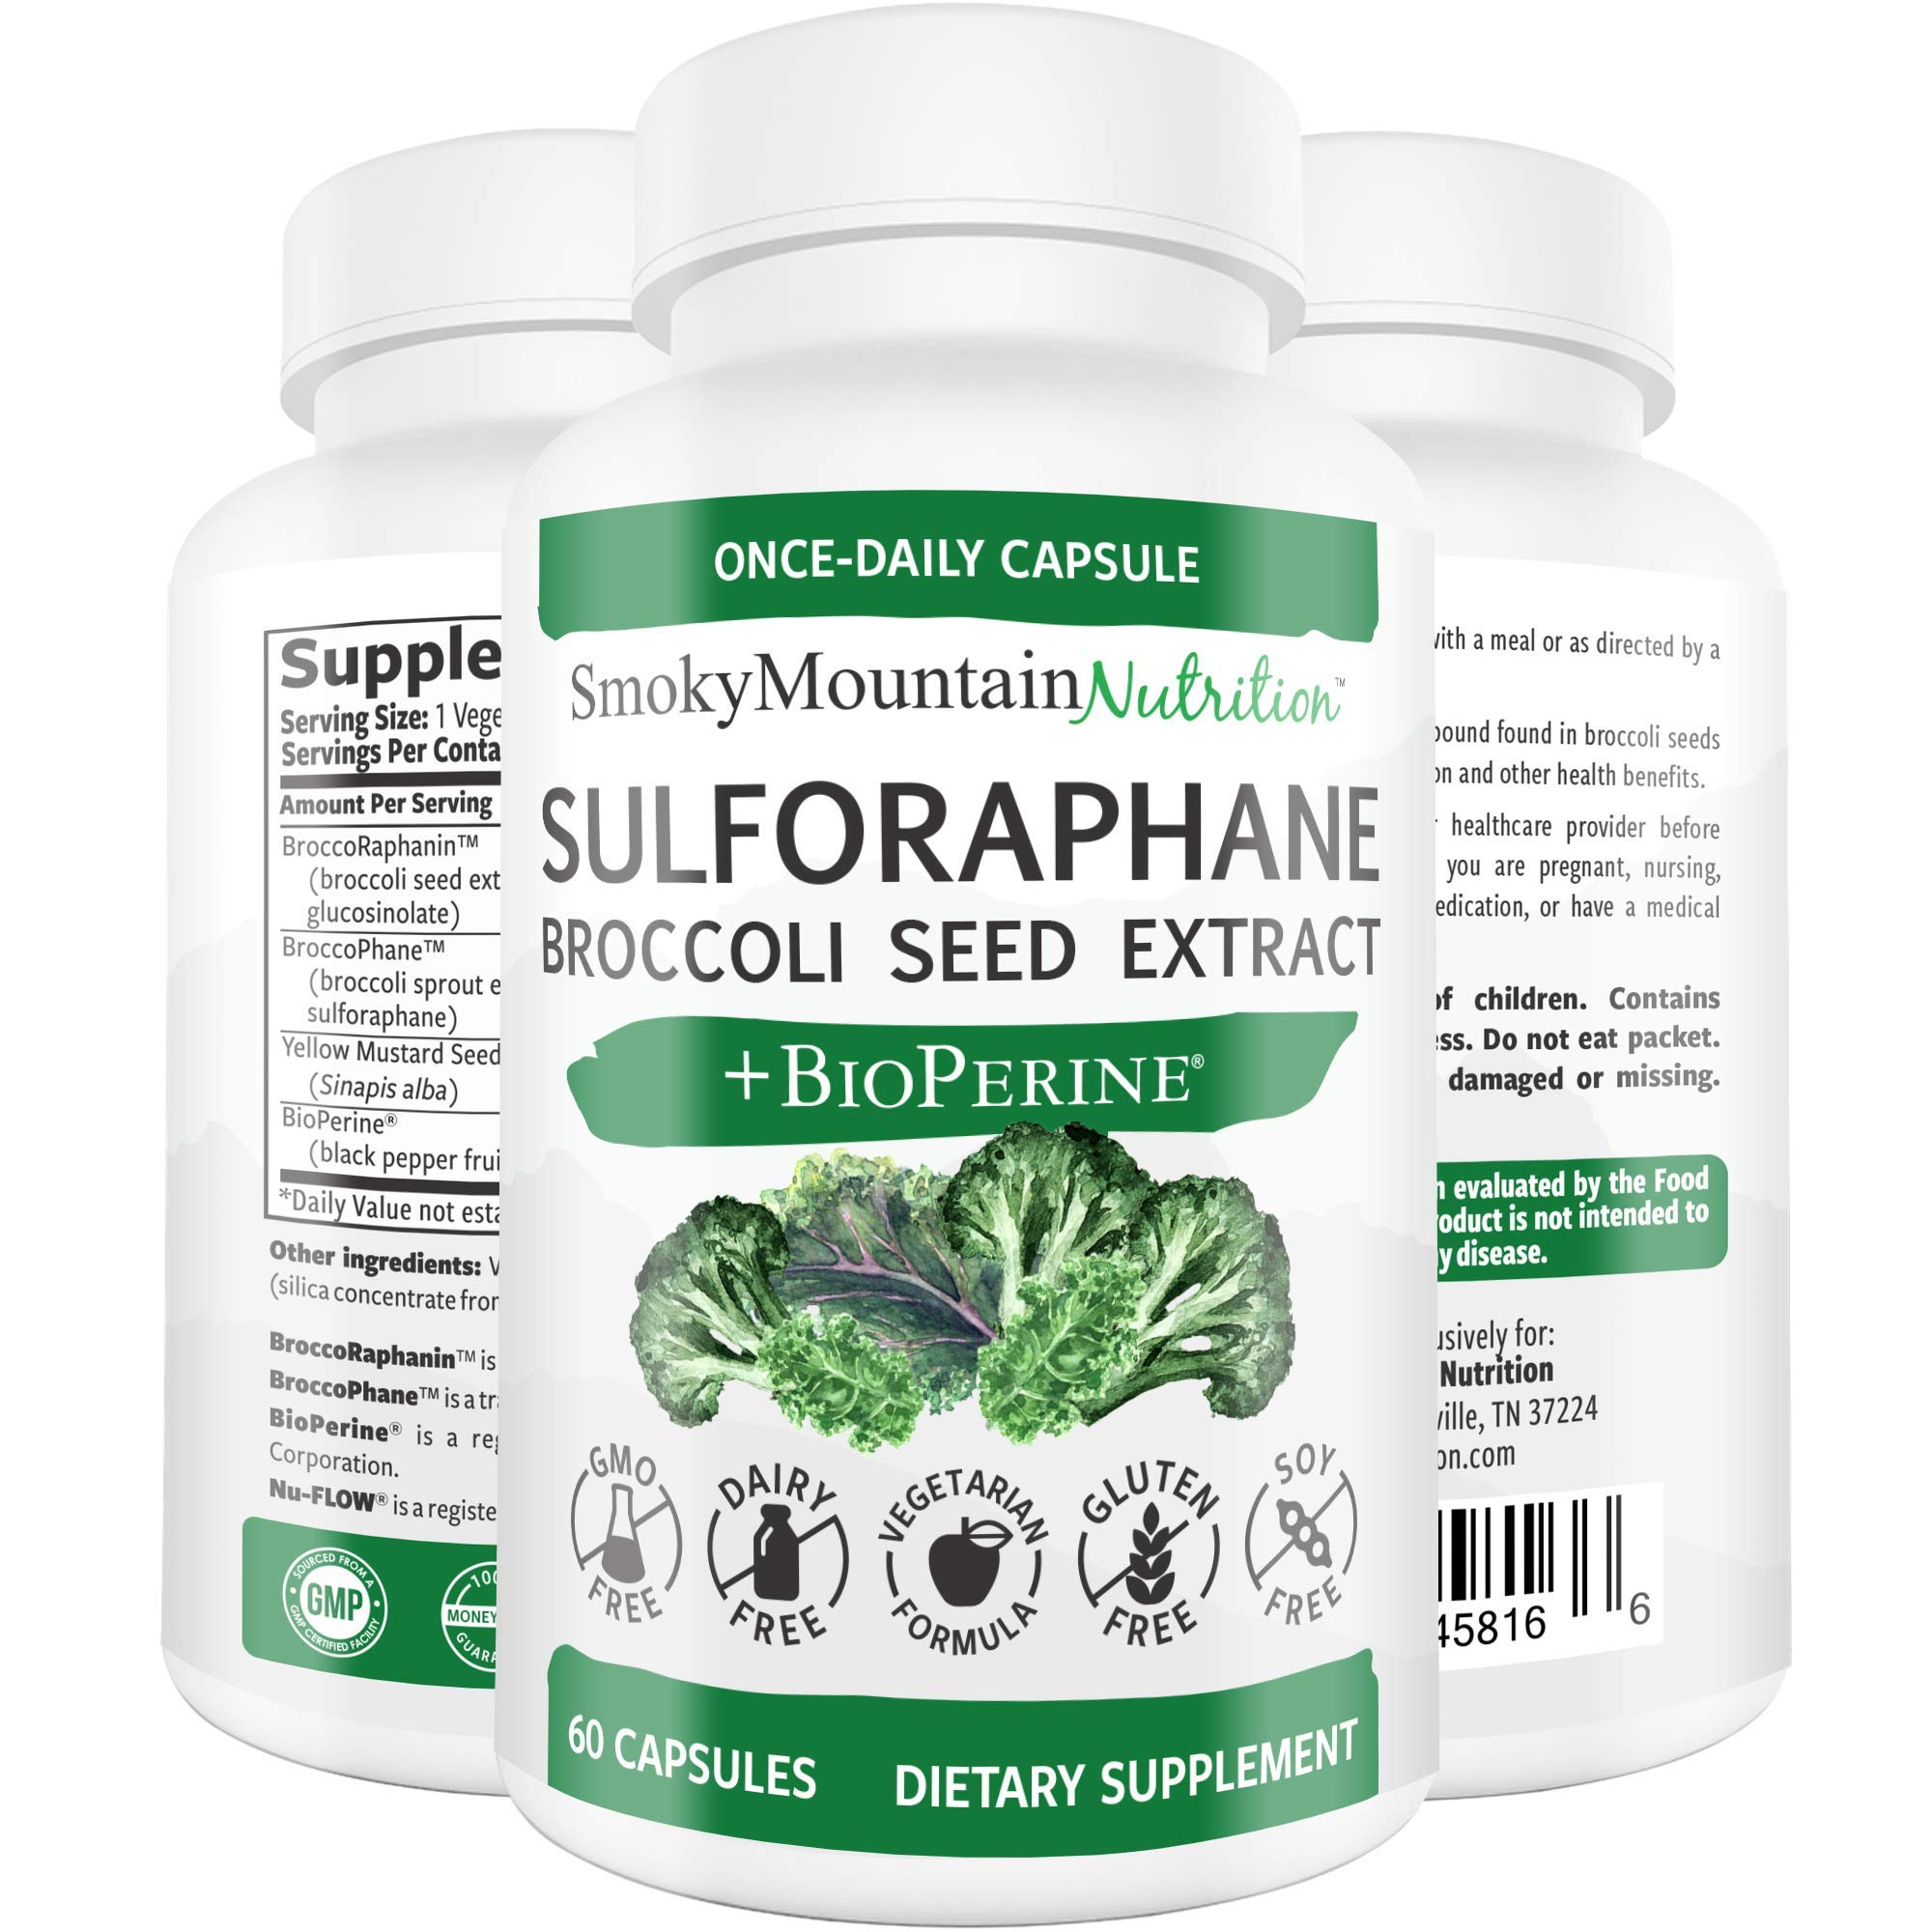 Sulforaphane Supplement 75mg with Myrosinase, Broccoli Seeds, Broccoli Sprouts Extract and Mustard Seeds - 60 Capsules - Glucoraphanin SGS, Glucosinolate, NRF2 - Detox, Anti-Inflammatory & Antioxidant by Smoky Mountain Naturals